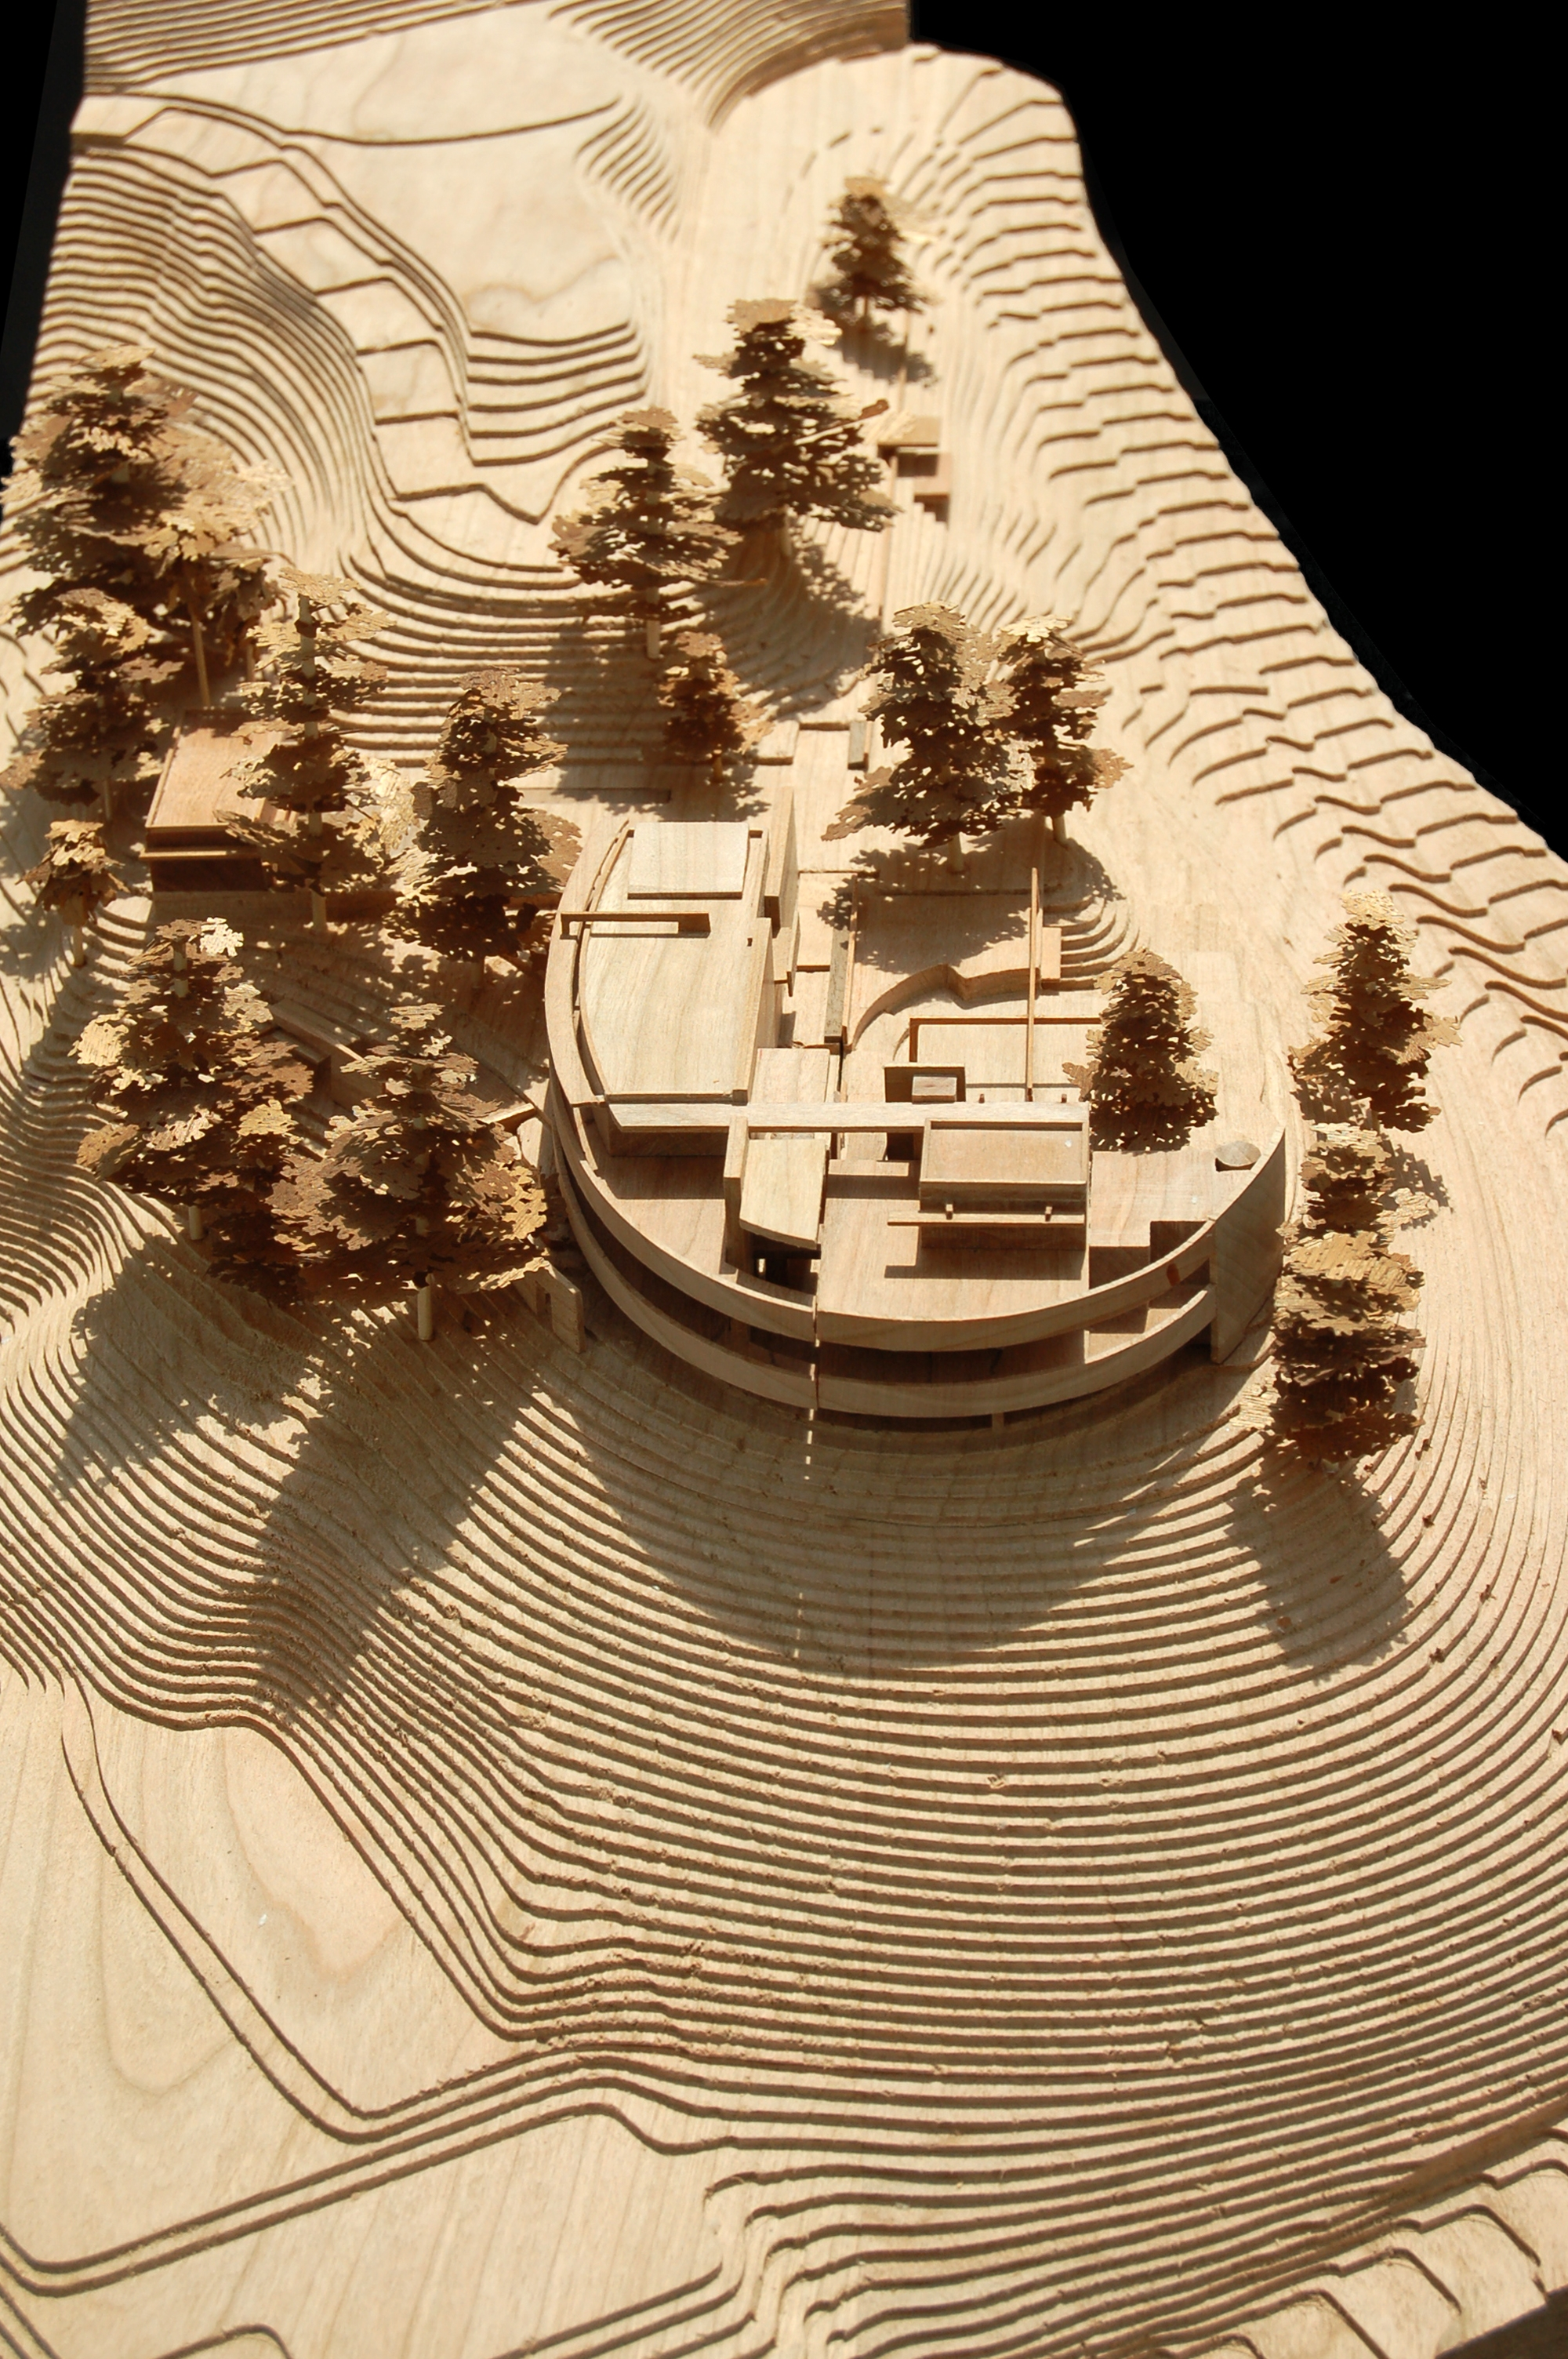 Architectural Model Kits Wood Cnc Projects Free Download Where To Learn Woodworking